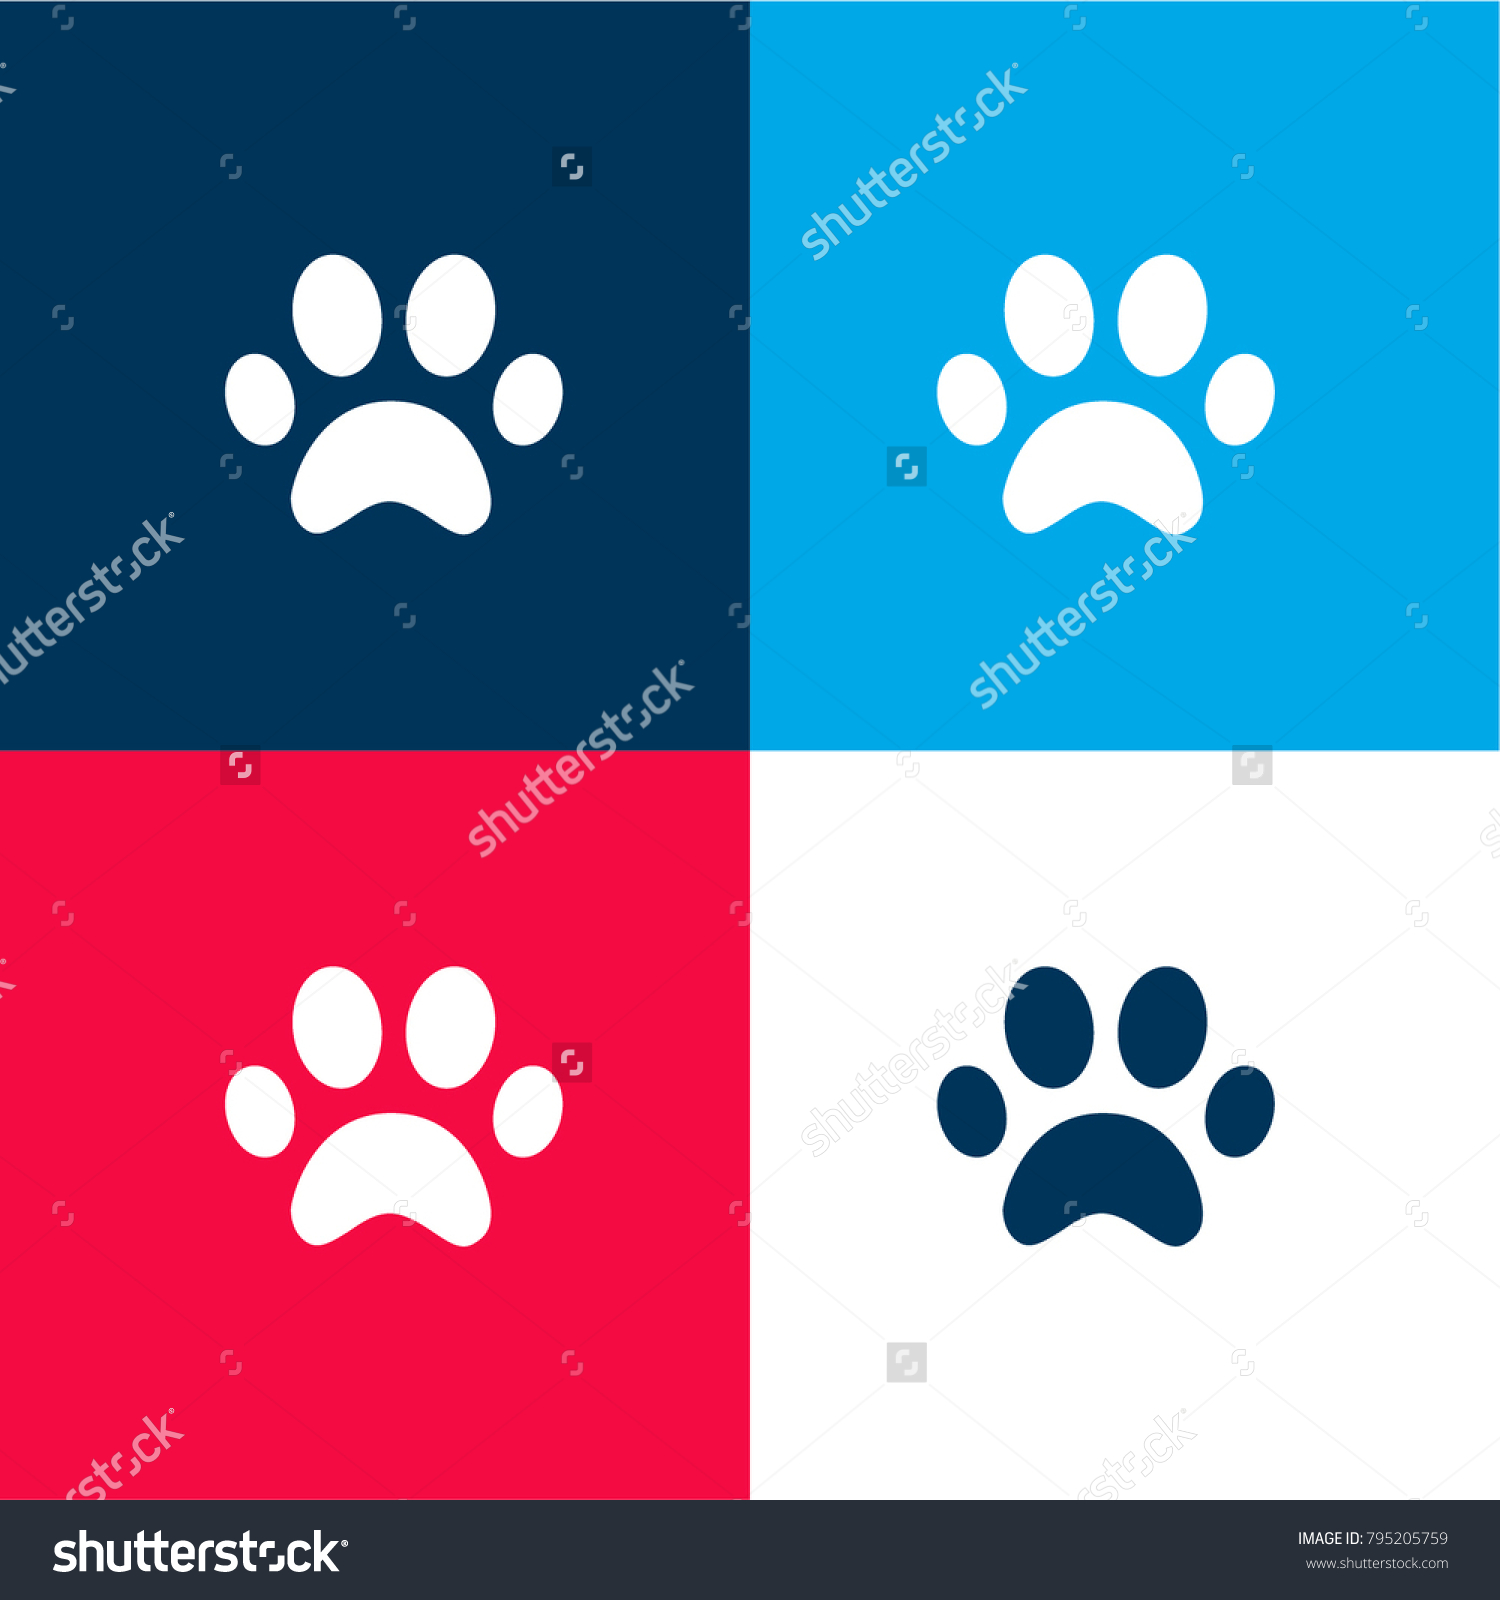 Cat Paw Print Vector Icon Effect Of Folded Paper Colored Red Blue Green Illustrations Flat Design